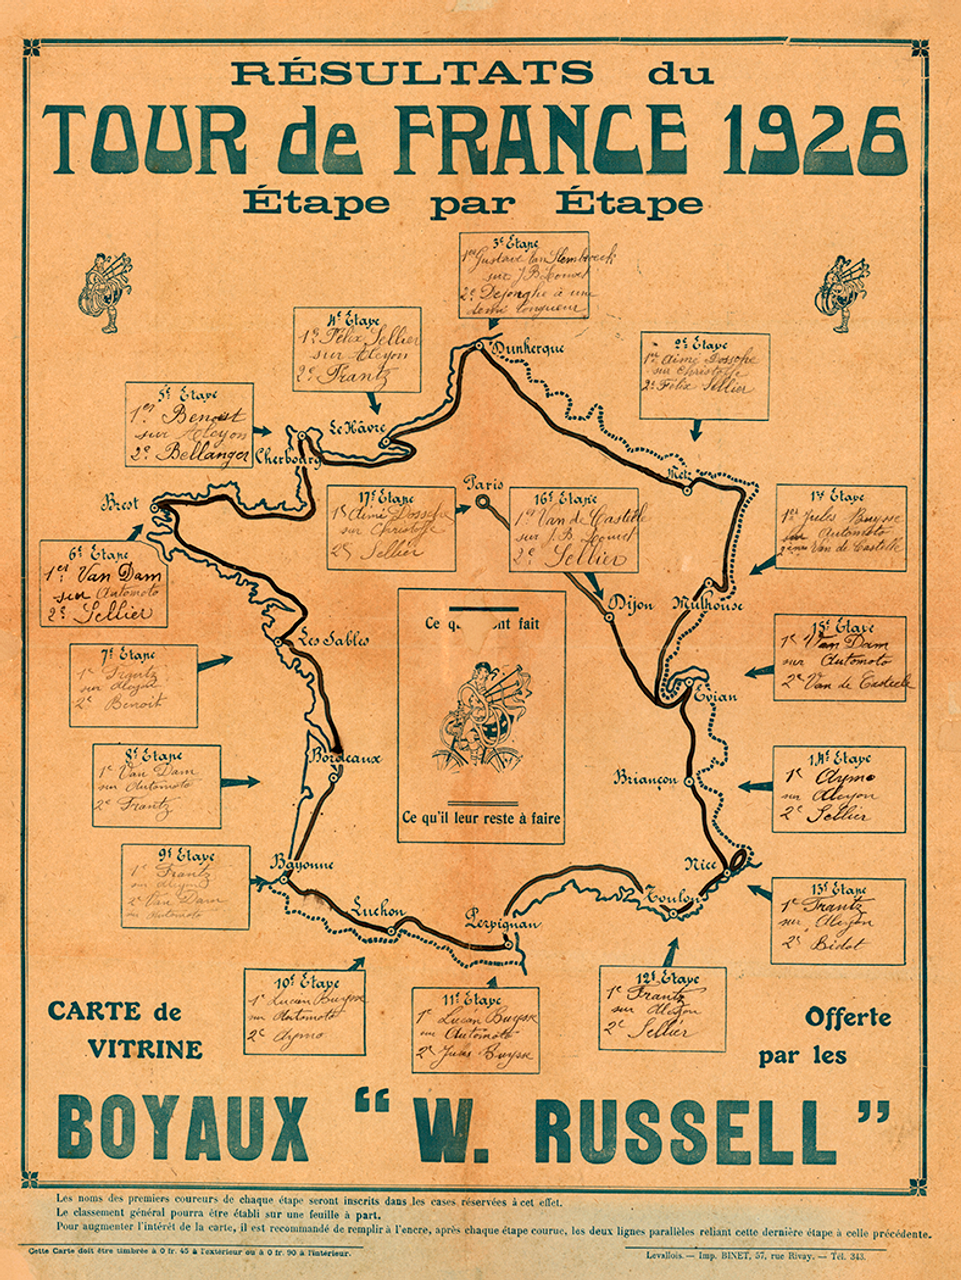 1926 Tour de France Vintage Map Poster designed so fans could follow the race and write in stage winners